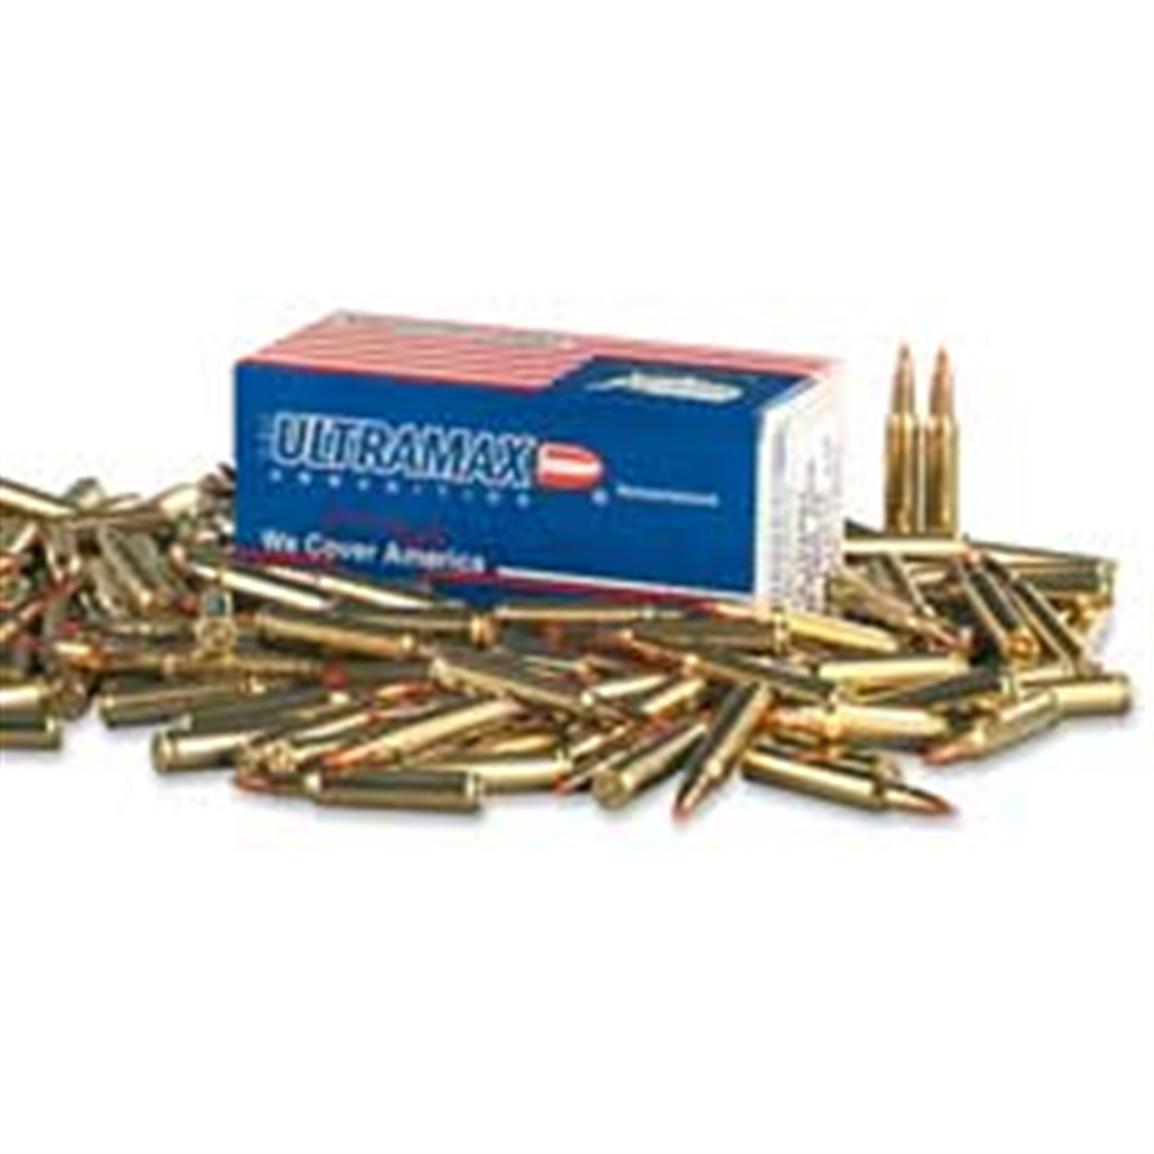 ultramax 223 varmint nbt 55 grain 500 rounds 265 99